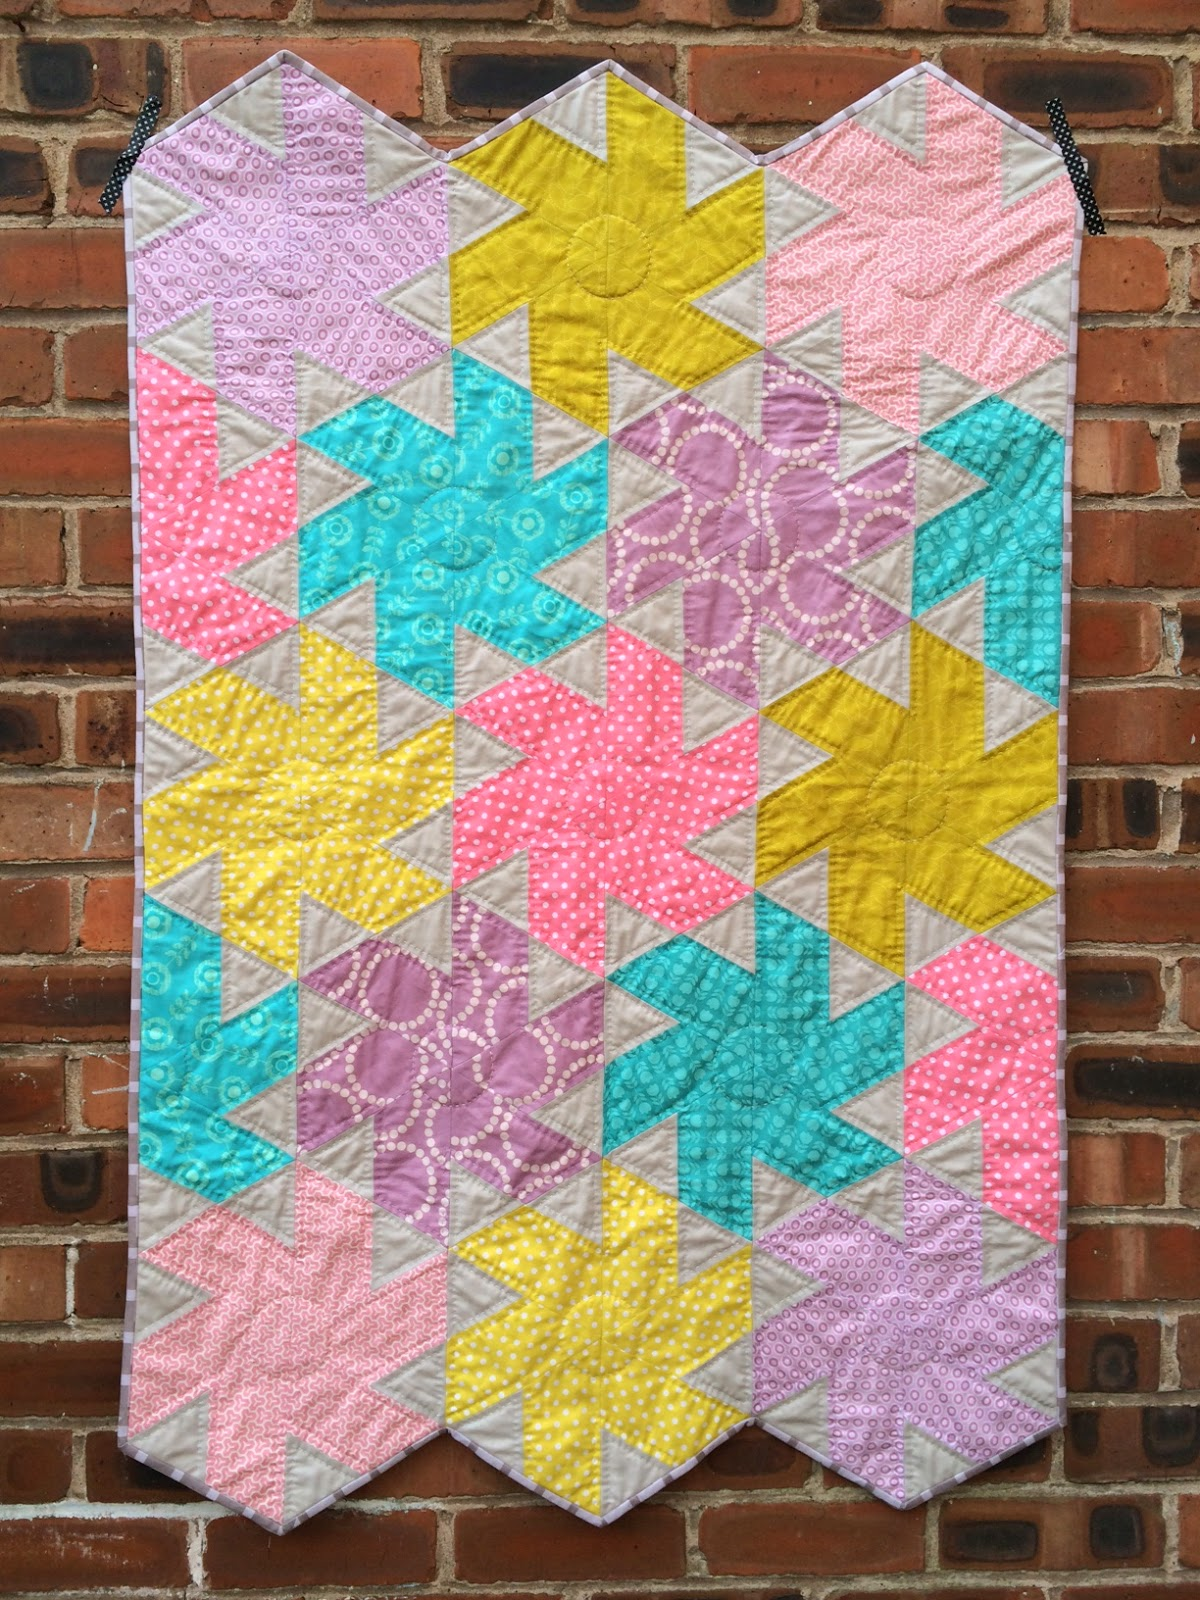 Tiny Dancer quilt